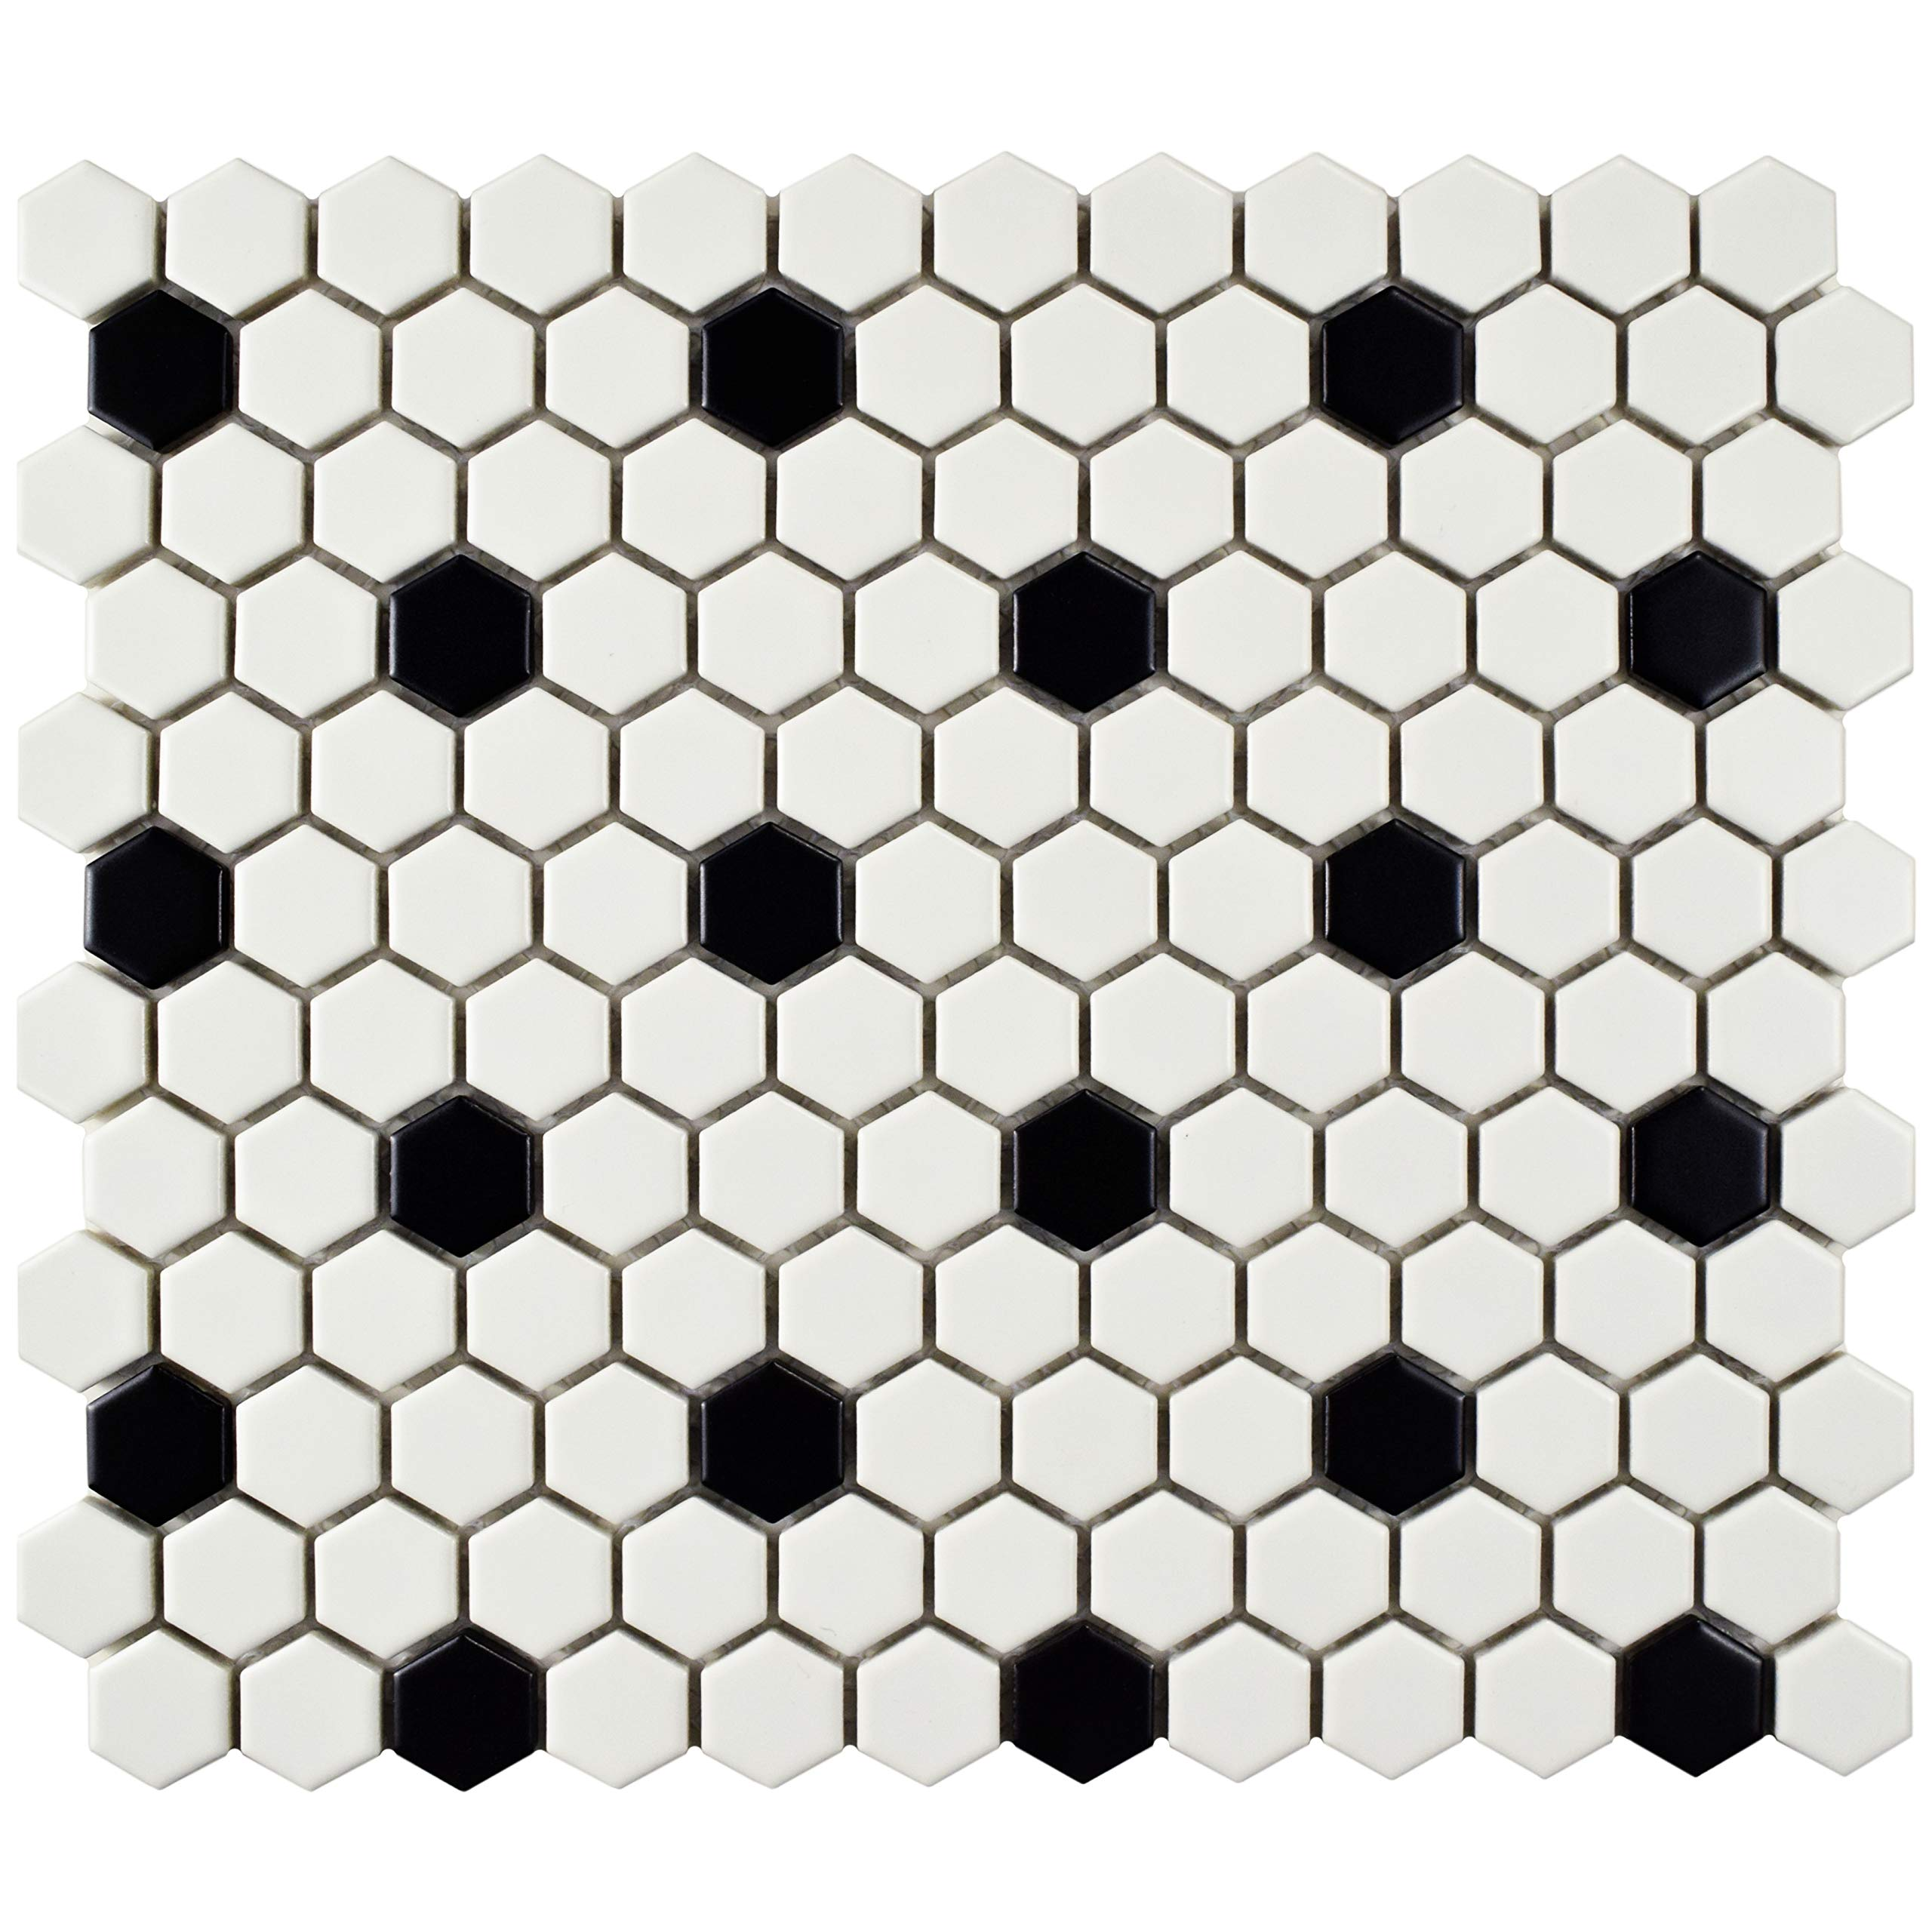 SomerTile FDXMHMWD Retro Hex Porcelain Floor and Wall Tile, 10.25'' x 11.75'', Matte White with Black Dot